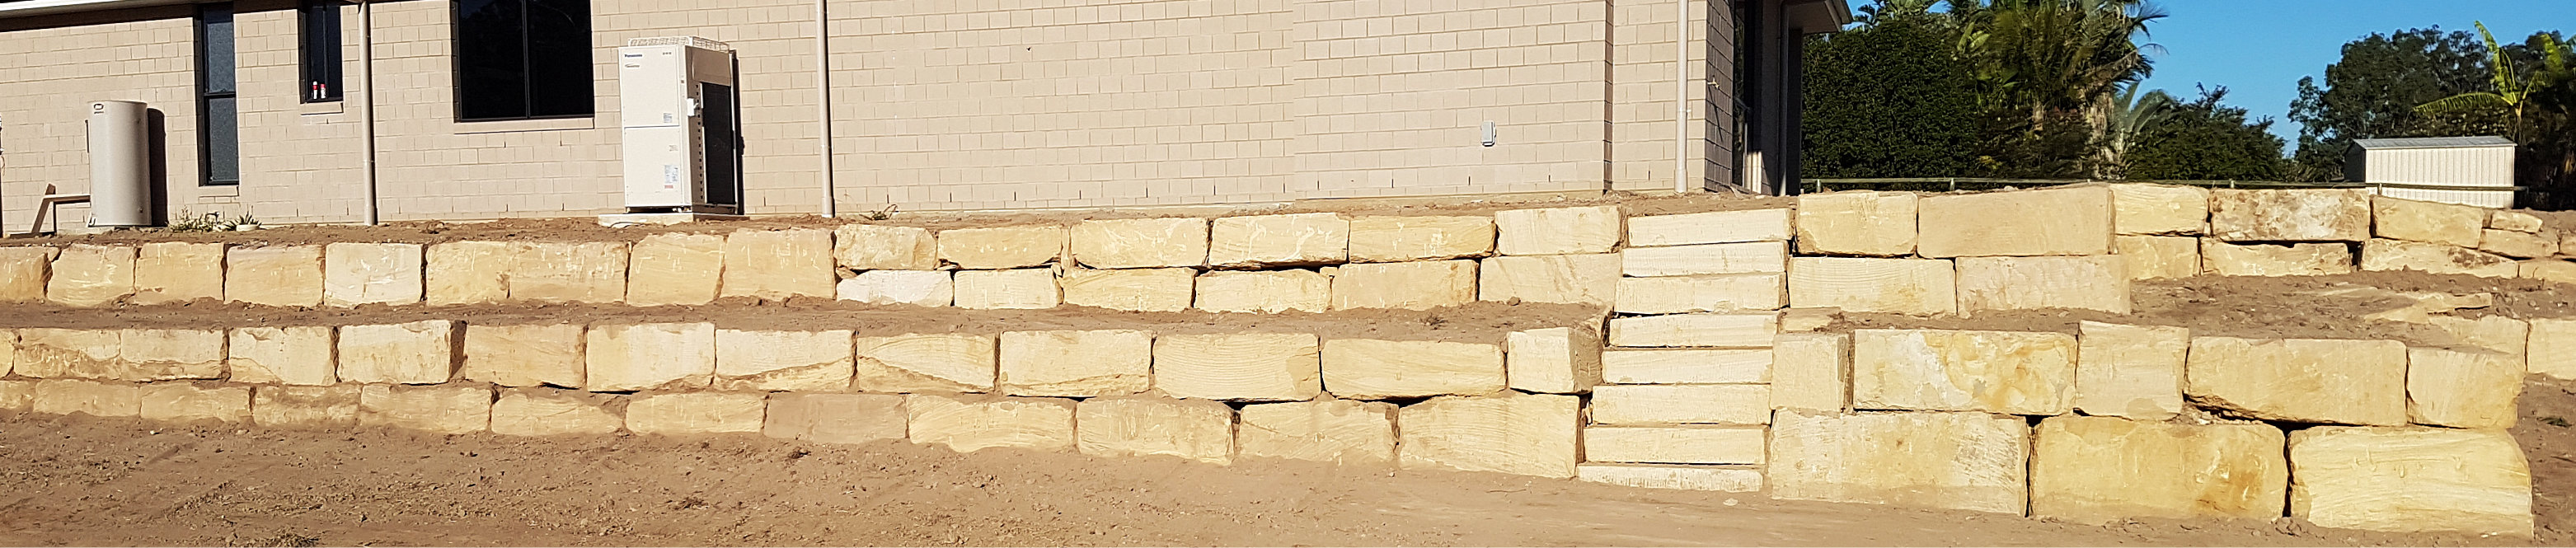 Sandstone Rock Wall Supply and Construction